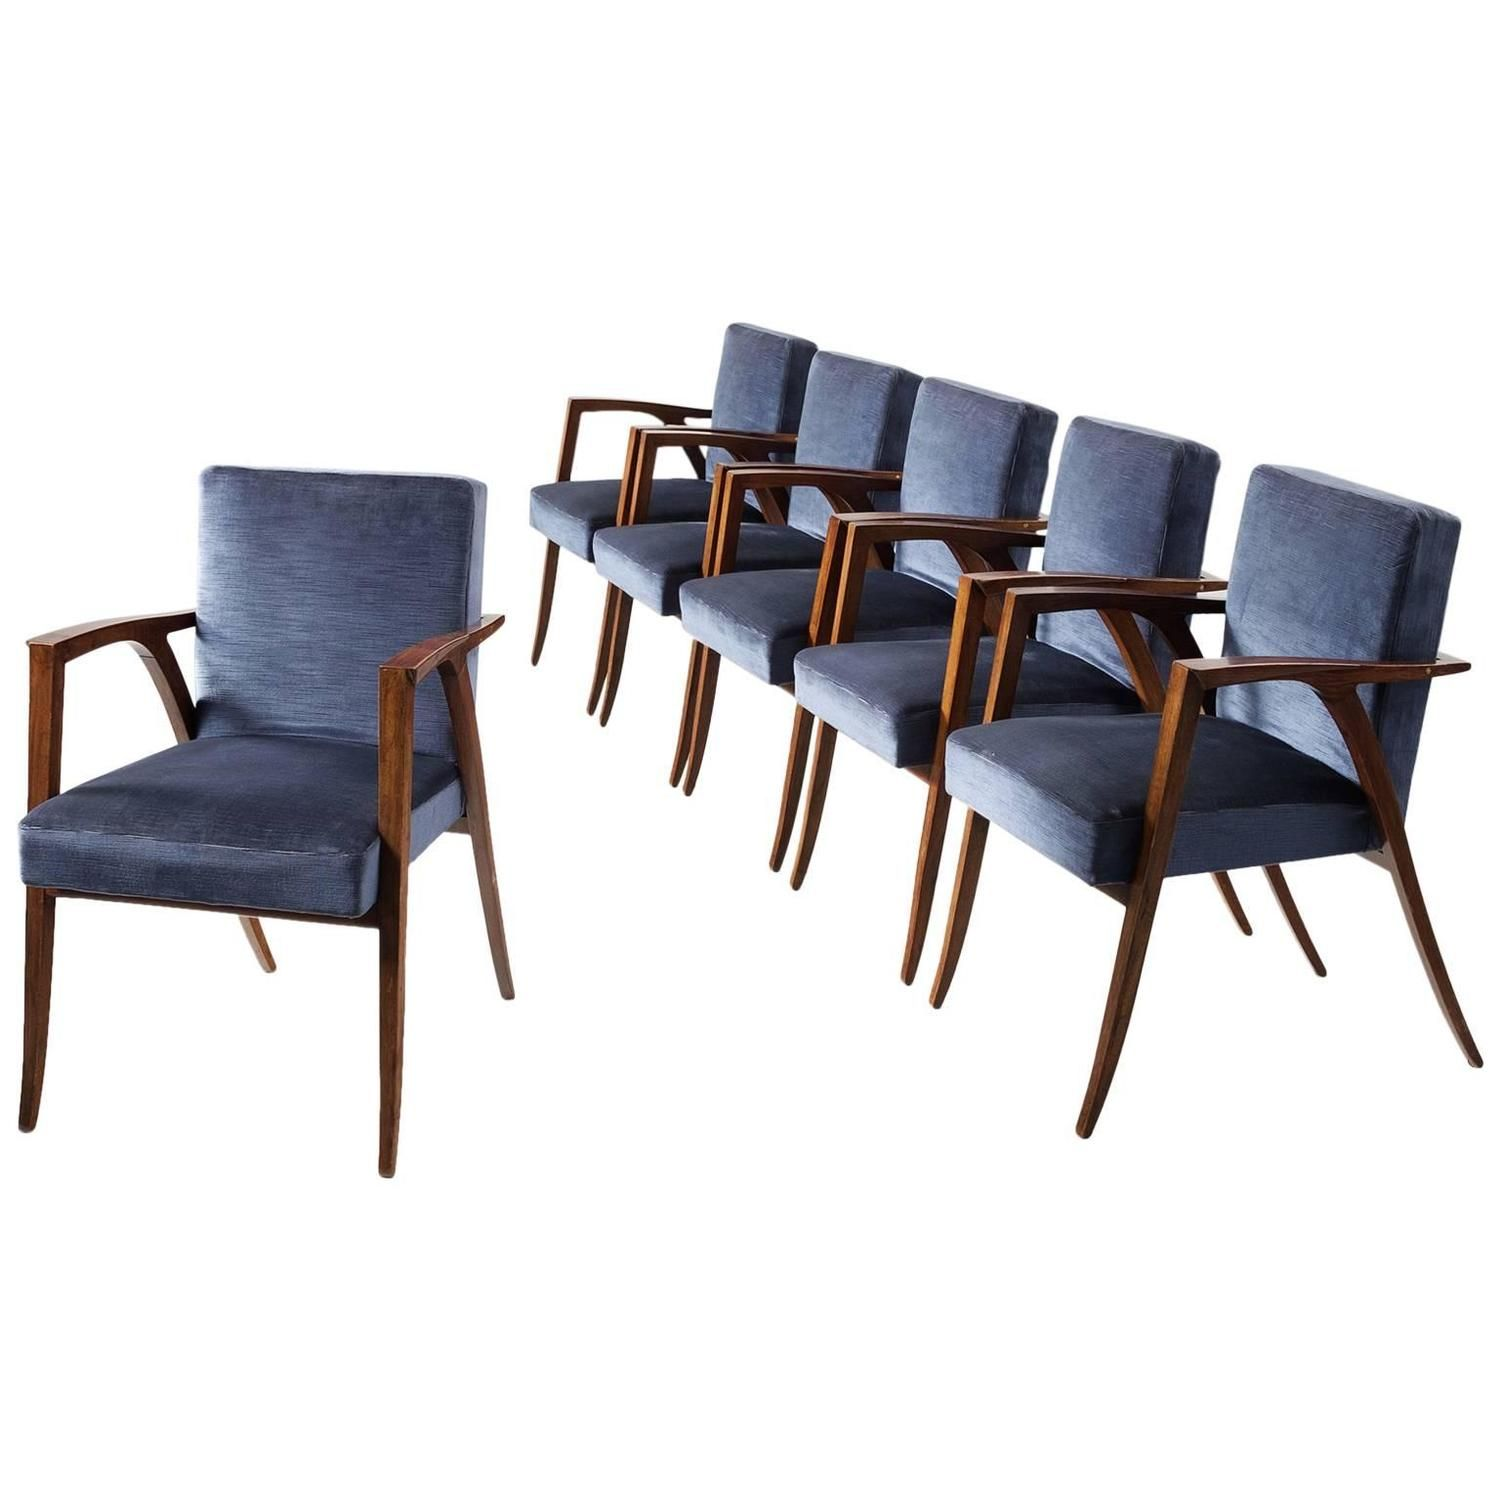 Set Of Six Dining Chairs In Rosewood And Blue Upholstery Dining Chairs Dining Room Chairs Modern Chair